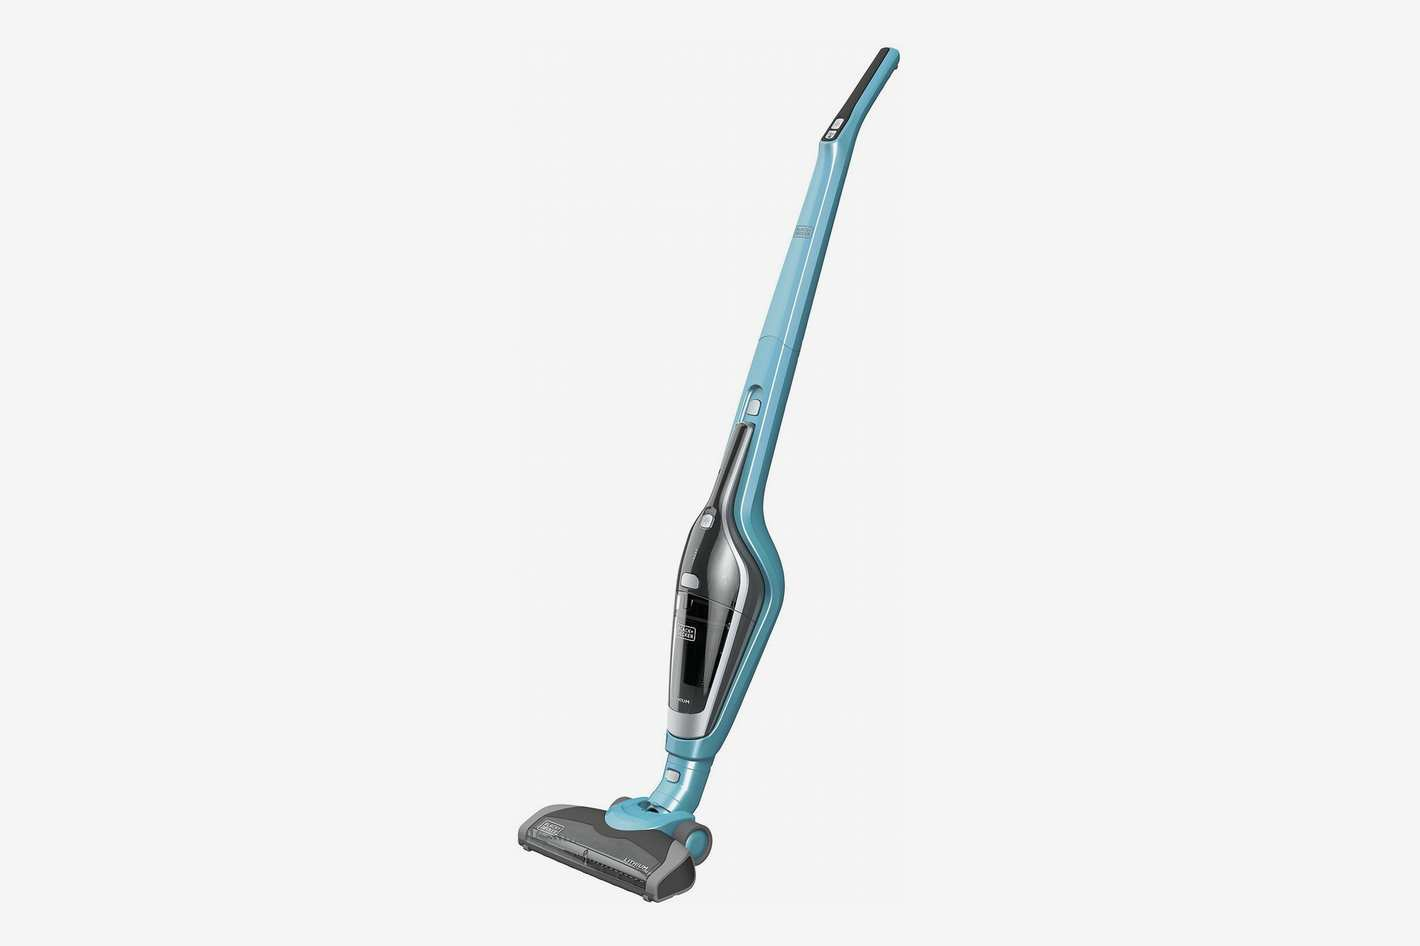 Black & Decker 2-In-1 Cordless Stick Vacuum